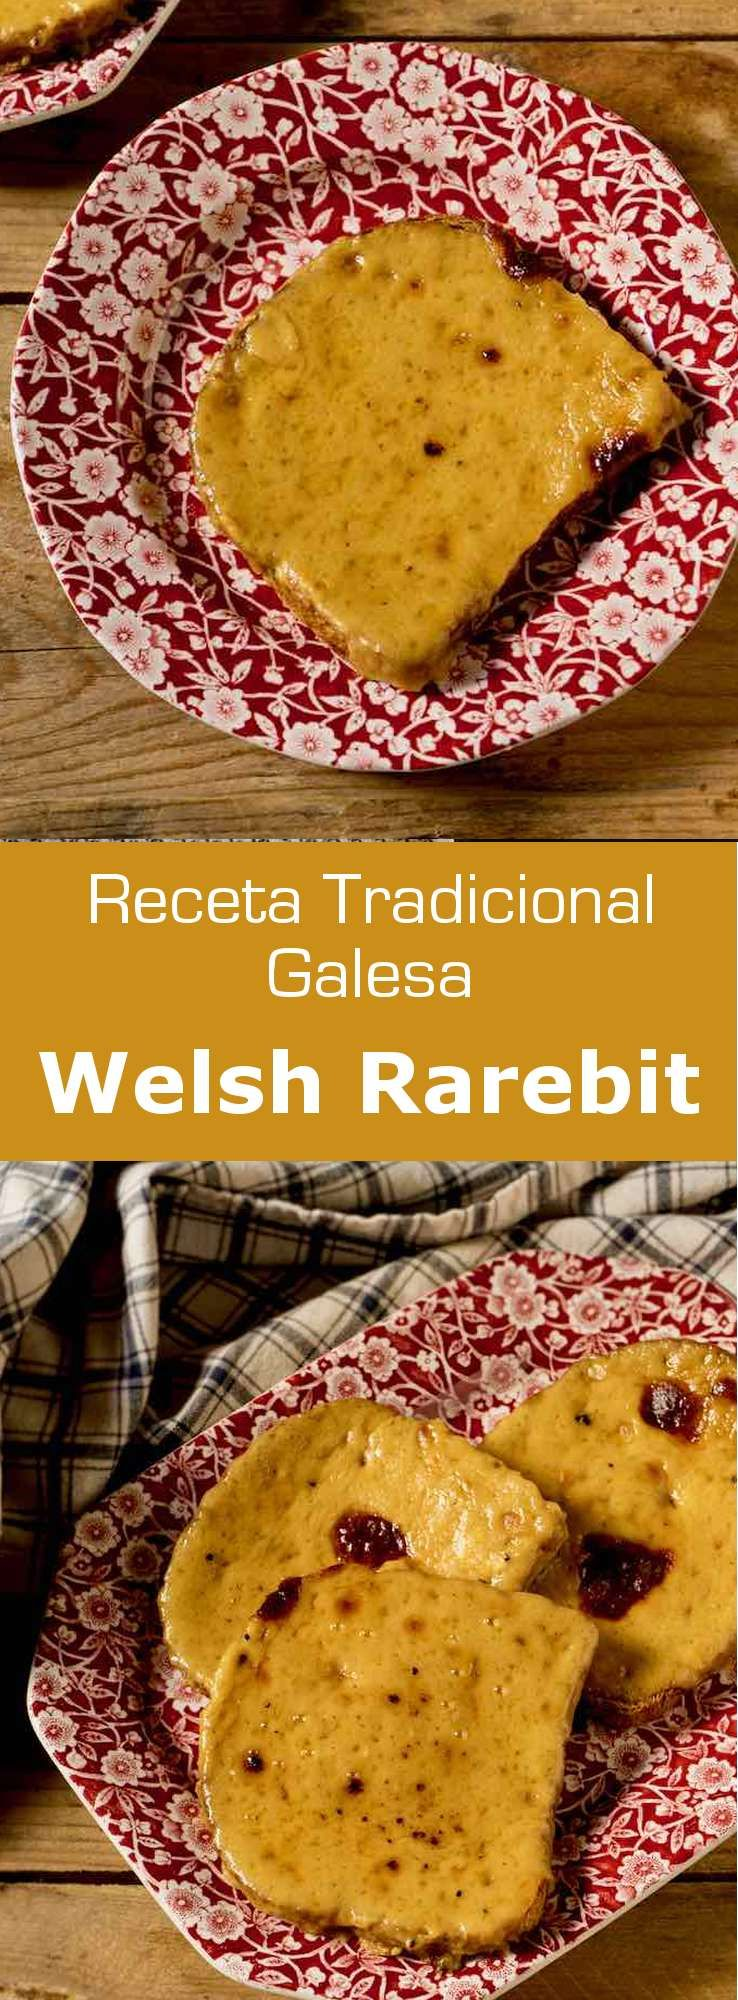 Gales: Welsh Rarebit